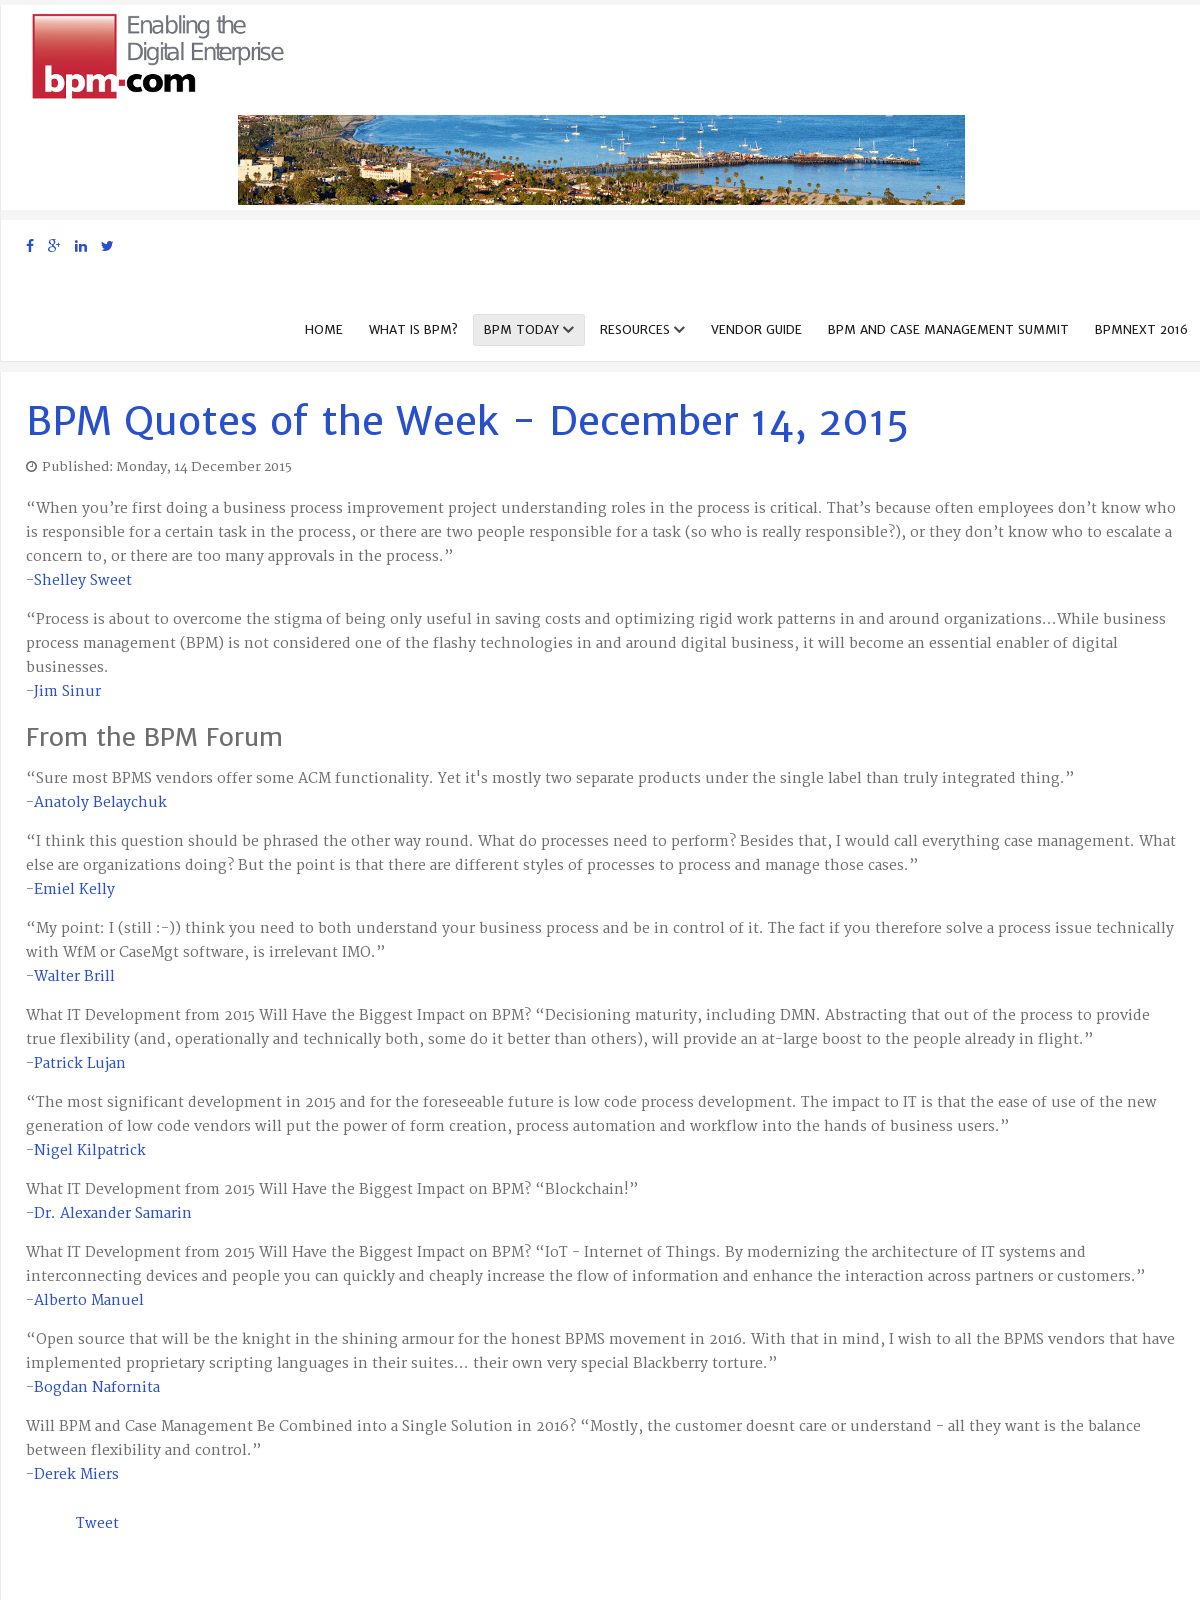 BPM Quotes of the Week - December 14, 2015 - BPI - The